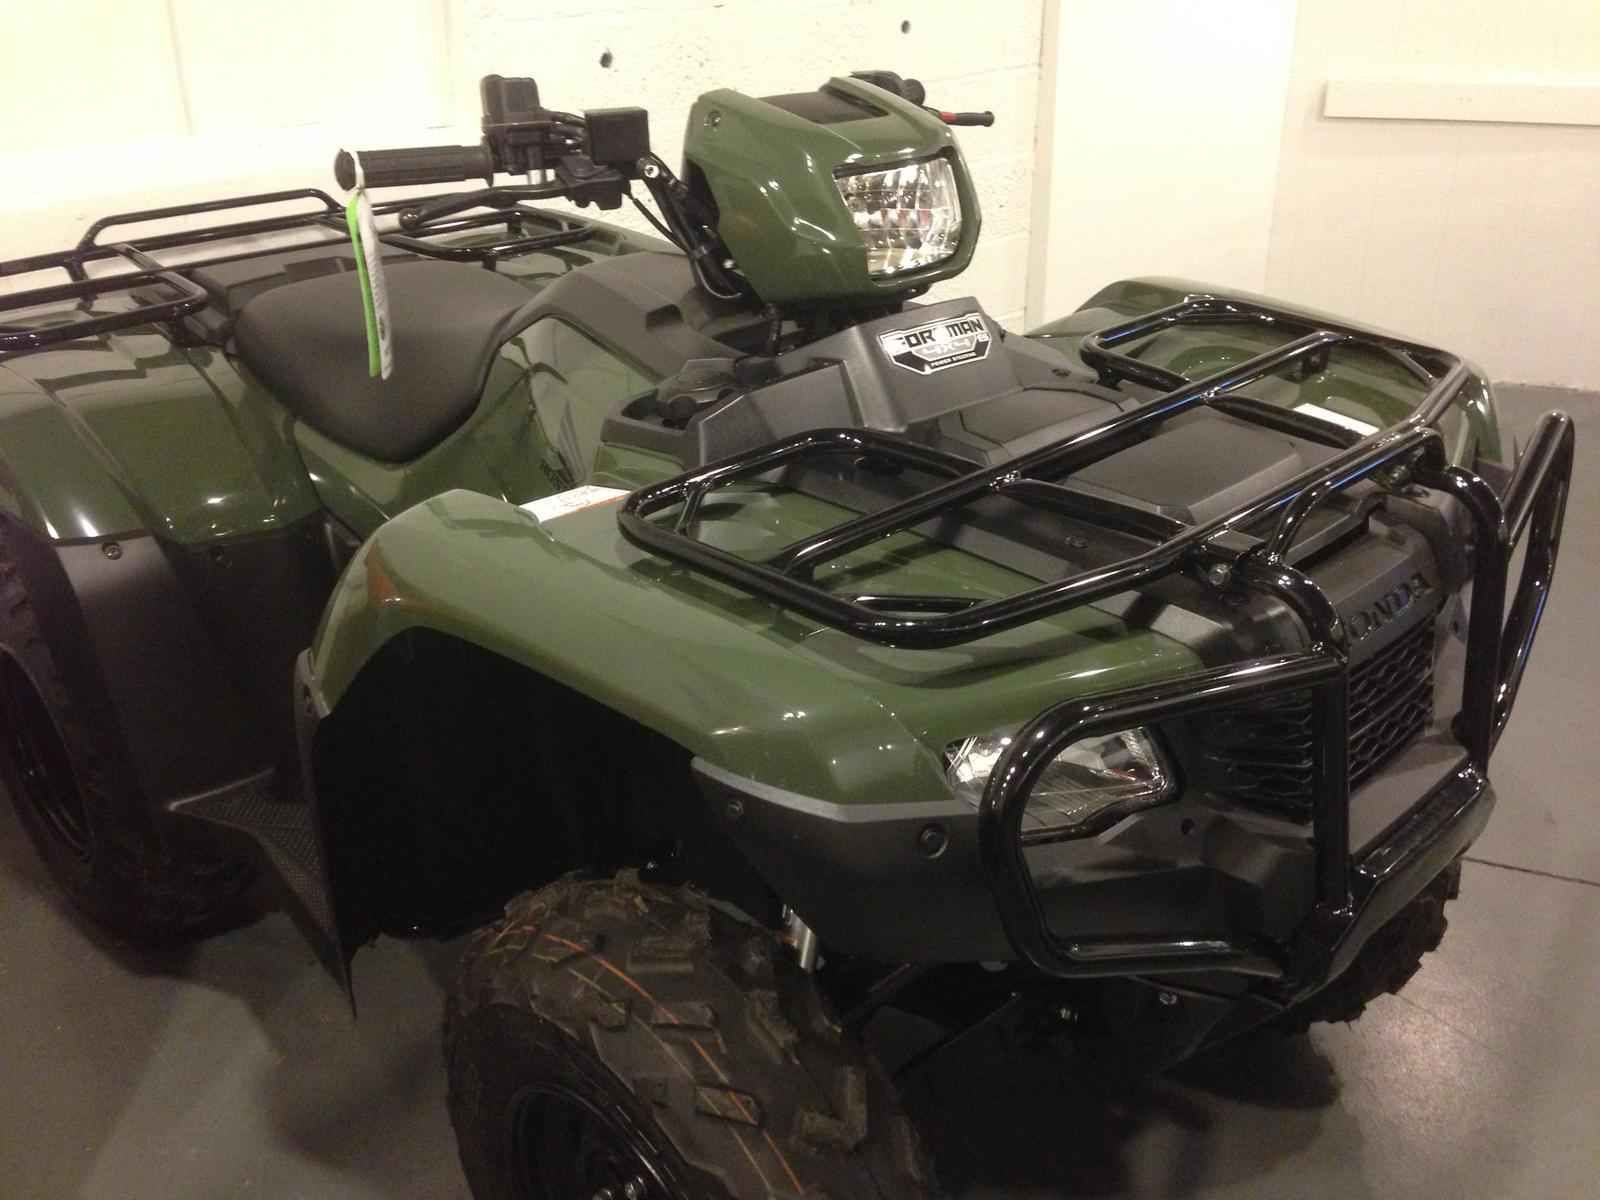 New 2016 Honda Fourtrax Foreman 4x4 Atvs For Sale In Pennsylvania 2016 Honda Fourtrax Foreman 4x4 Freight 2016 Honda Honda 4x4